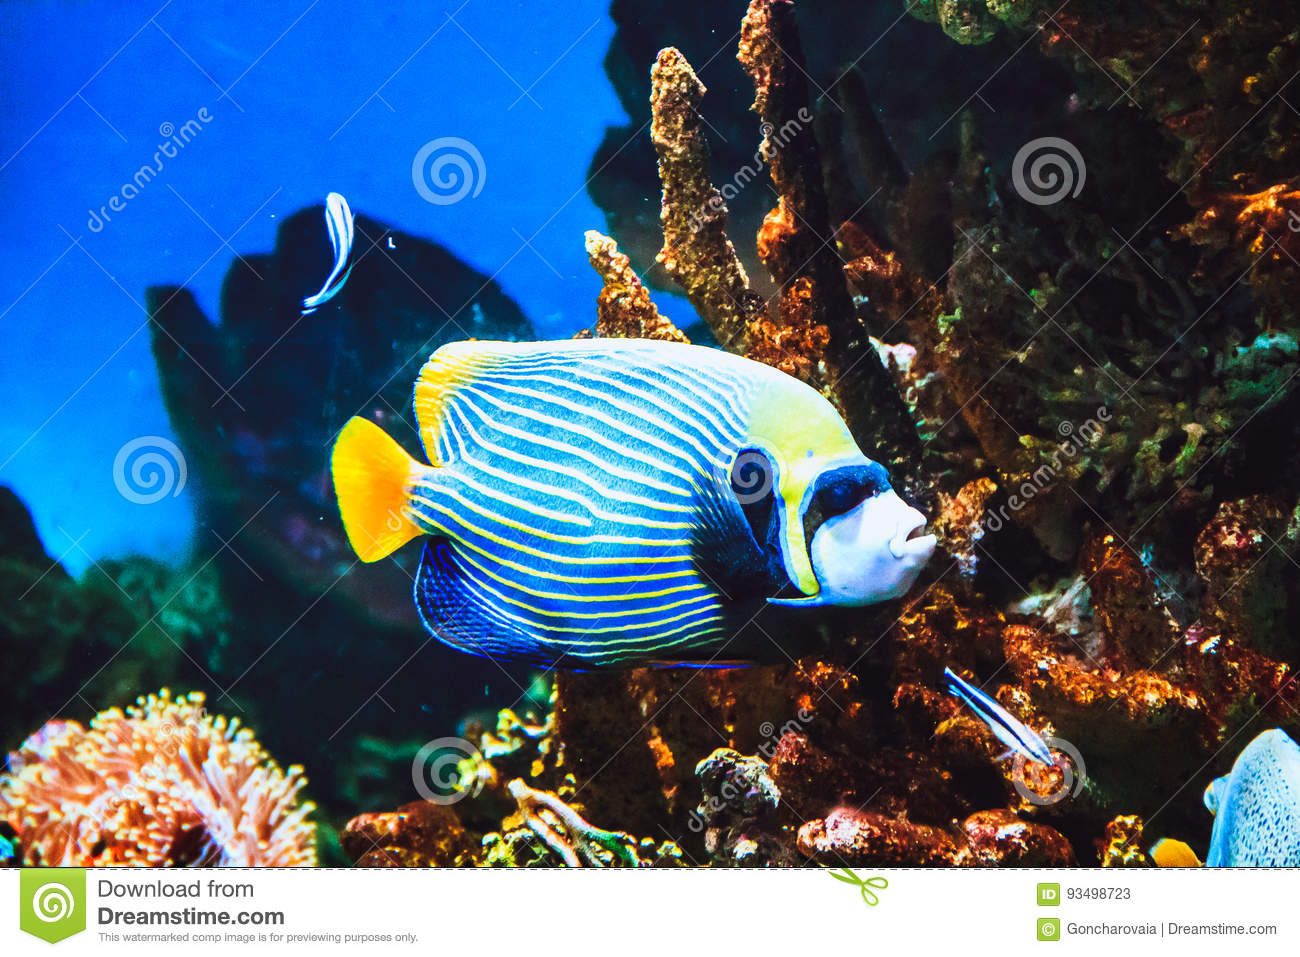 Emperor Angelfish Pomacanthus imperator fish and coral reef in ocean.